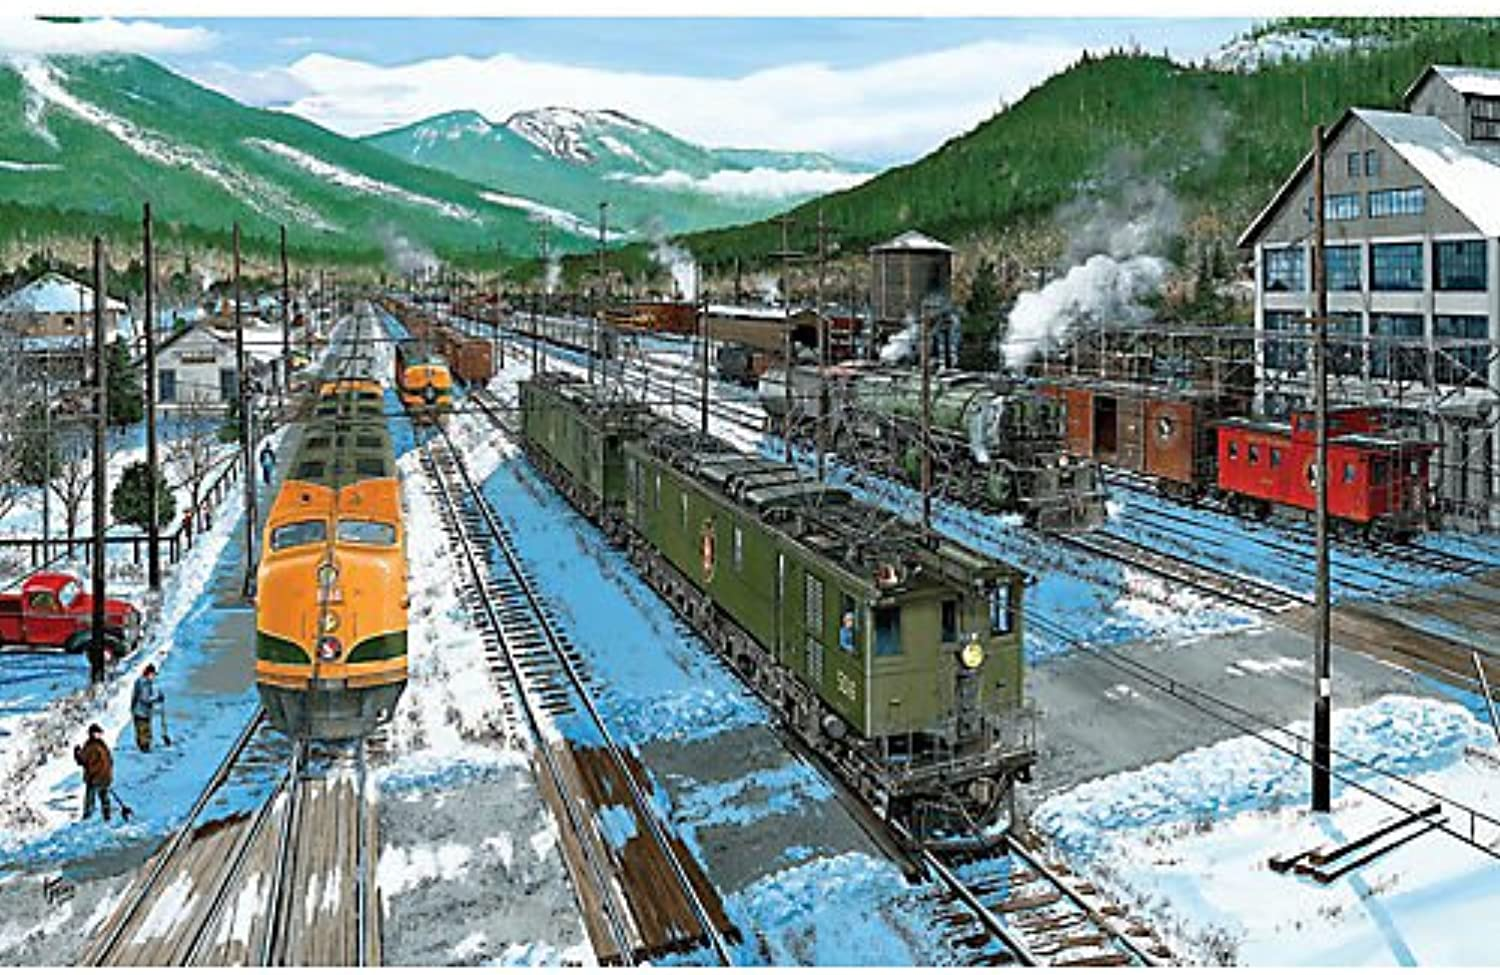 Power Swap at Sky a 550Piece Jigsaw Puzzle by Sunsout Inc.